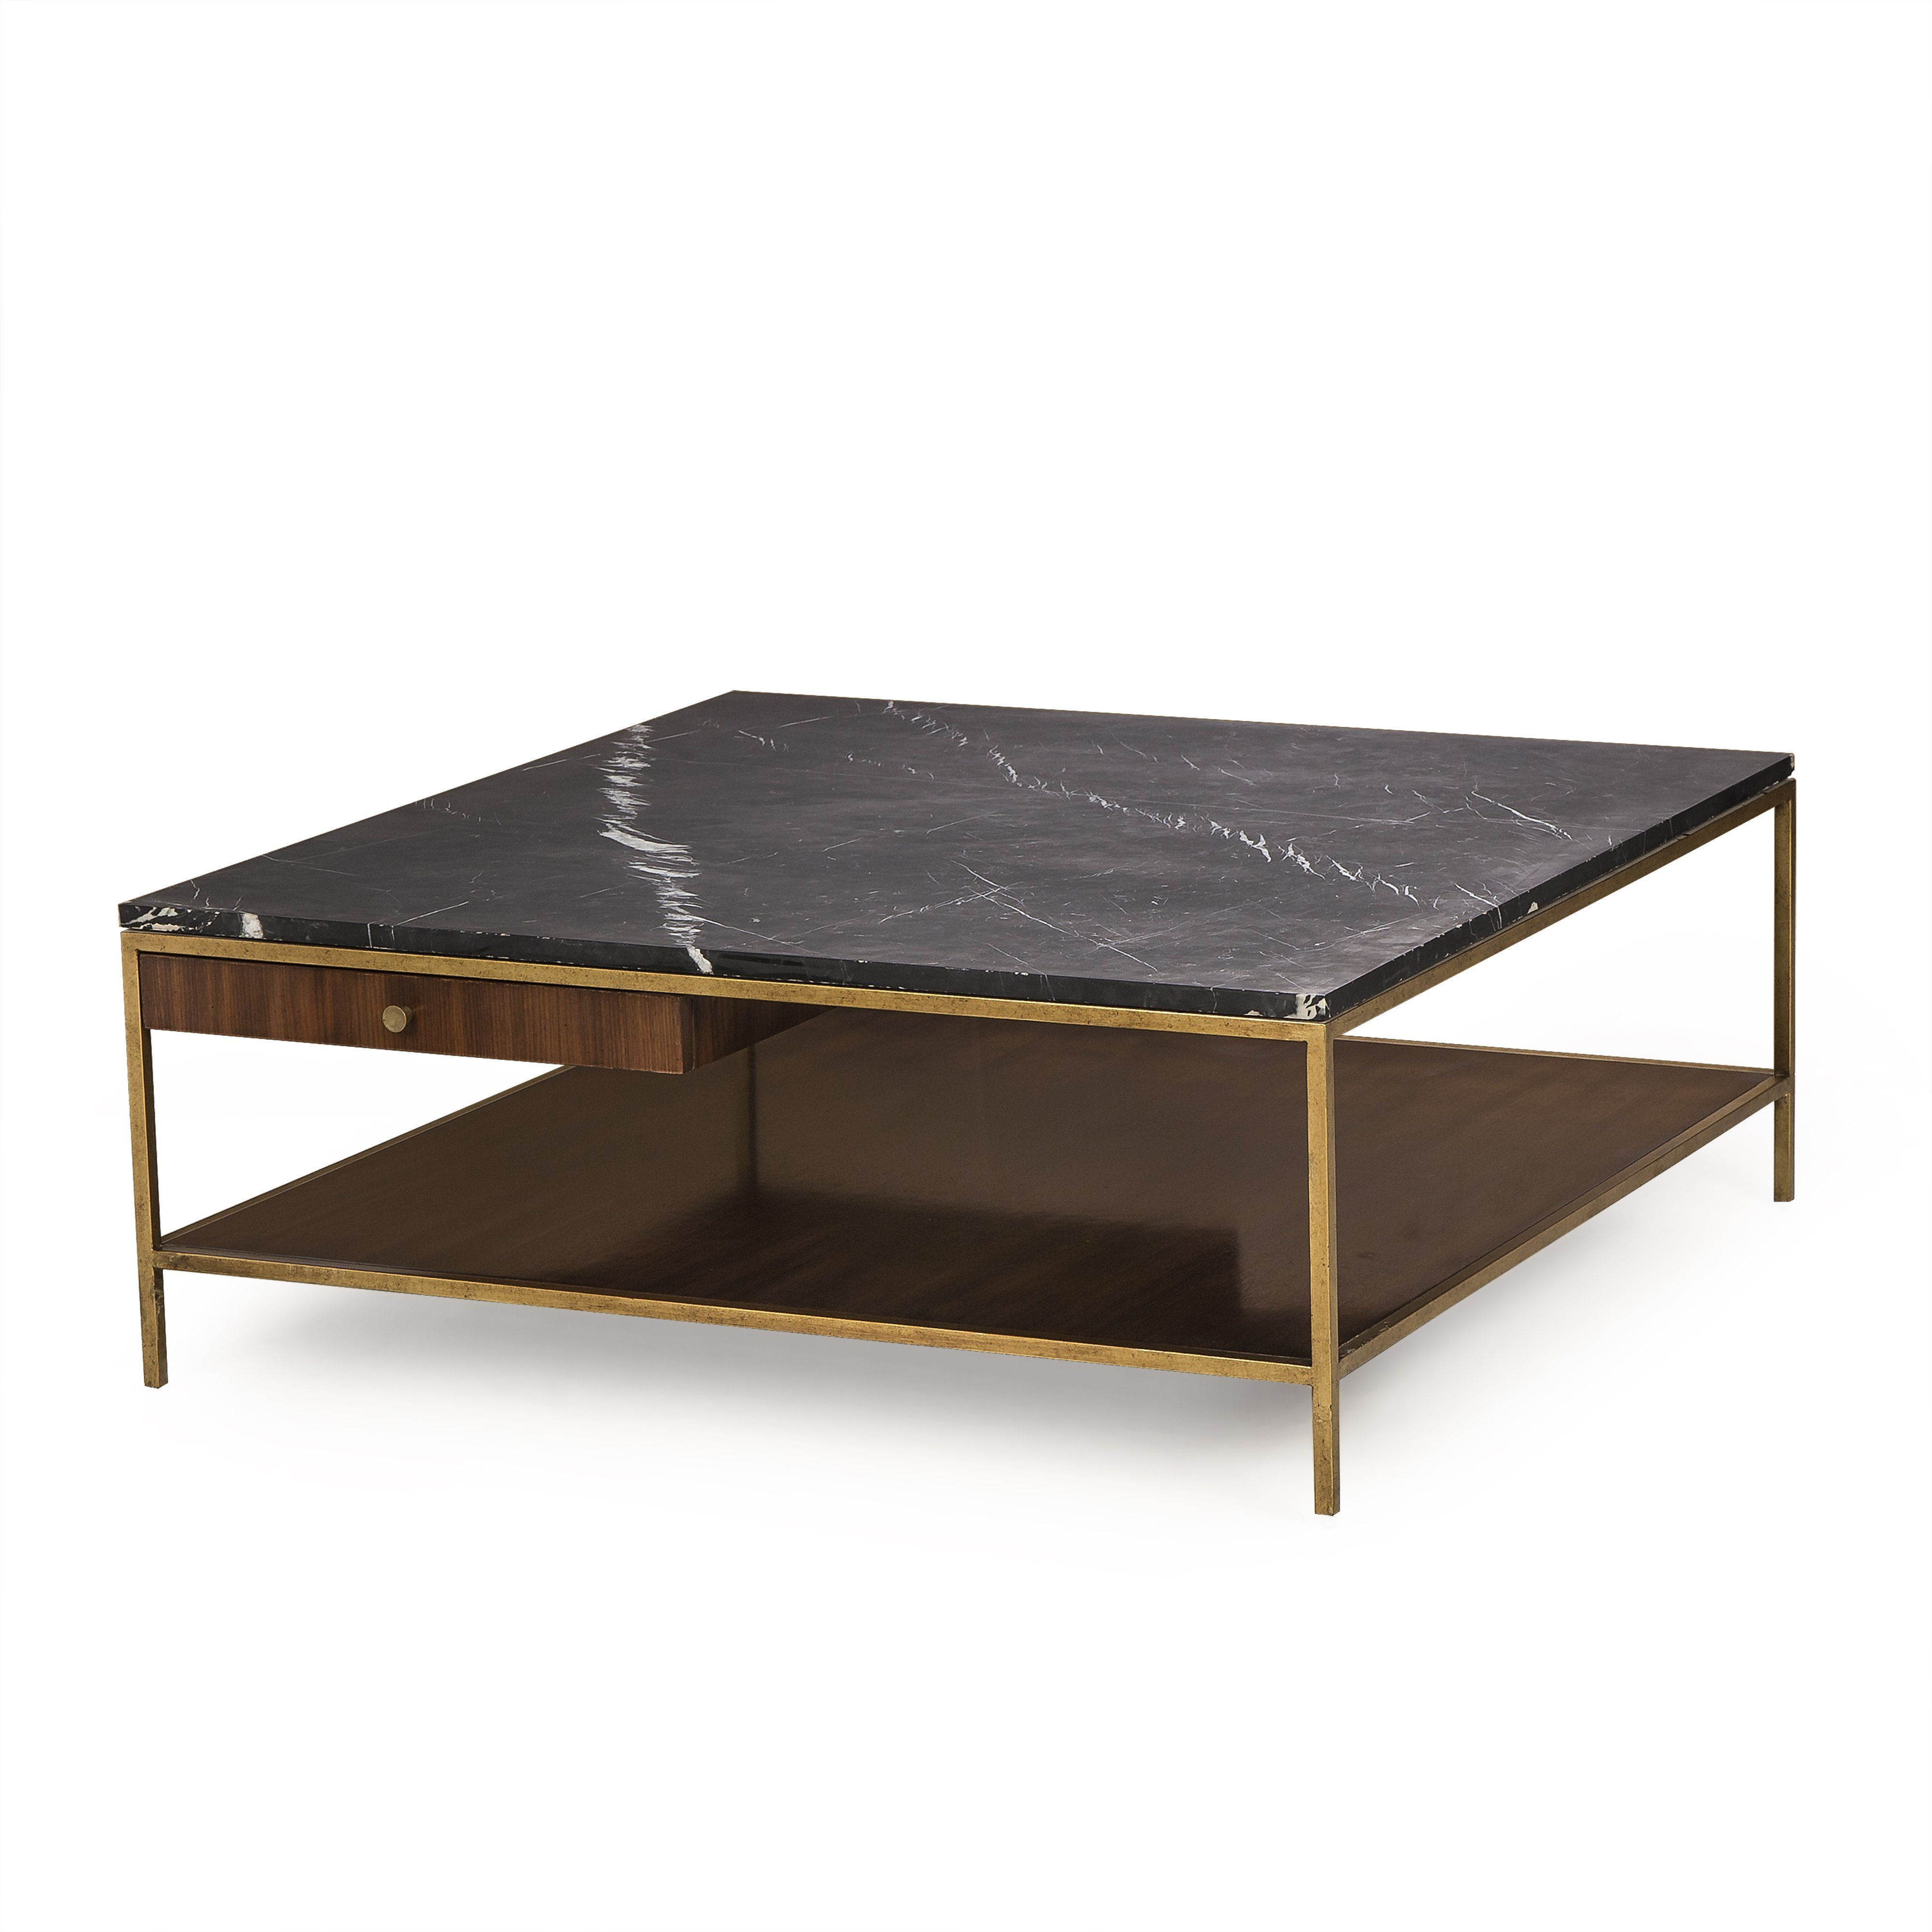 Copeland Coffee Table Large Square France Son Coffee Table Square Coffee Table Large Square Coffee Table [ 4000 x 4000 Pixel ]